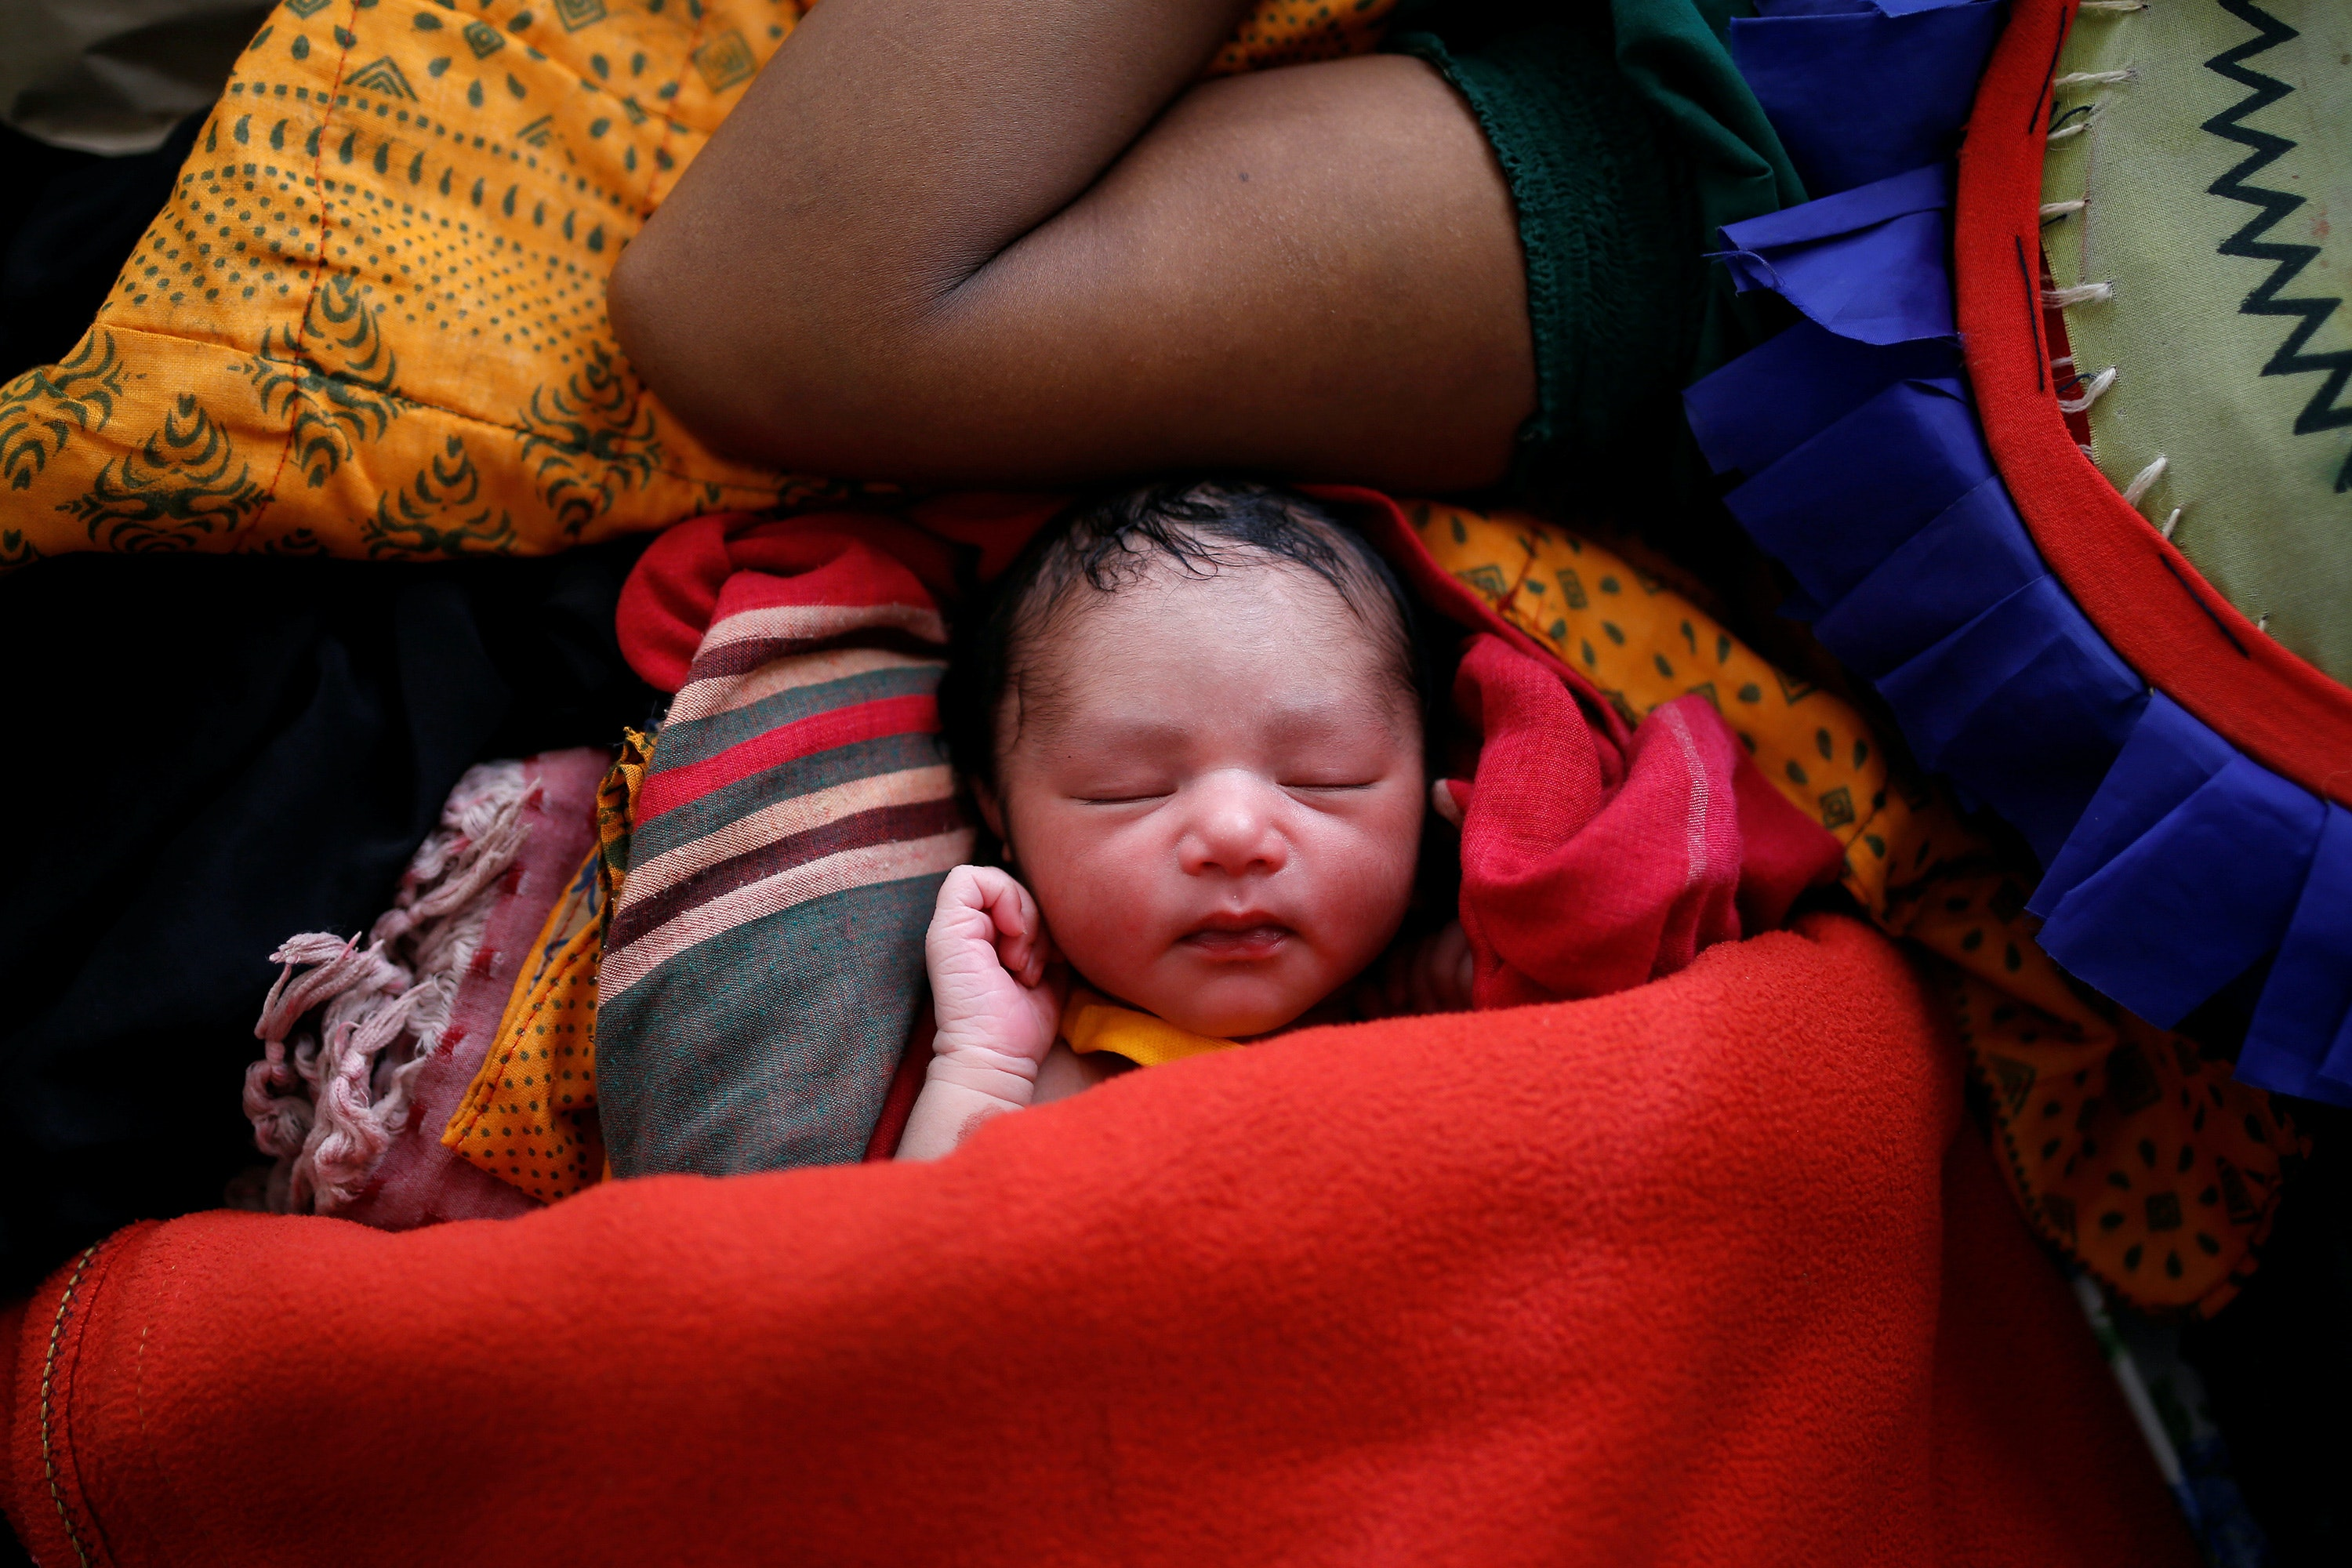 A newborn baby wrapped in a red blanket